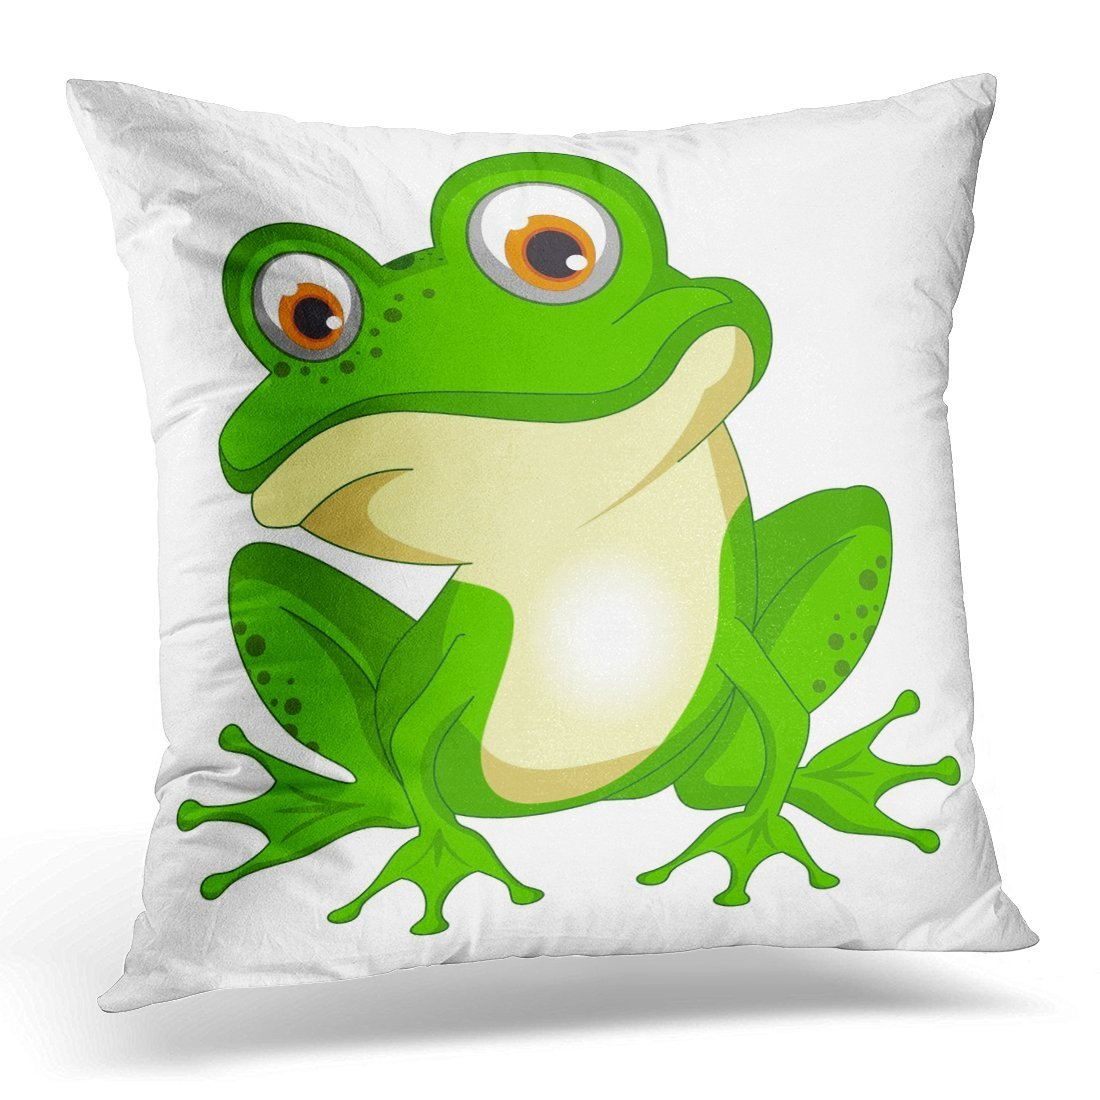 SPXUBZ Cartoon Frog Toad Amphibians Clipart Decorative Home Decor Square Indoor/Outdoor Pillowcase Size: 20x20 Inch(Two Sides)